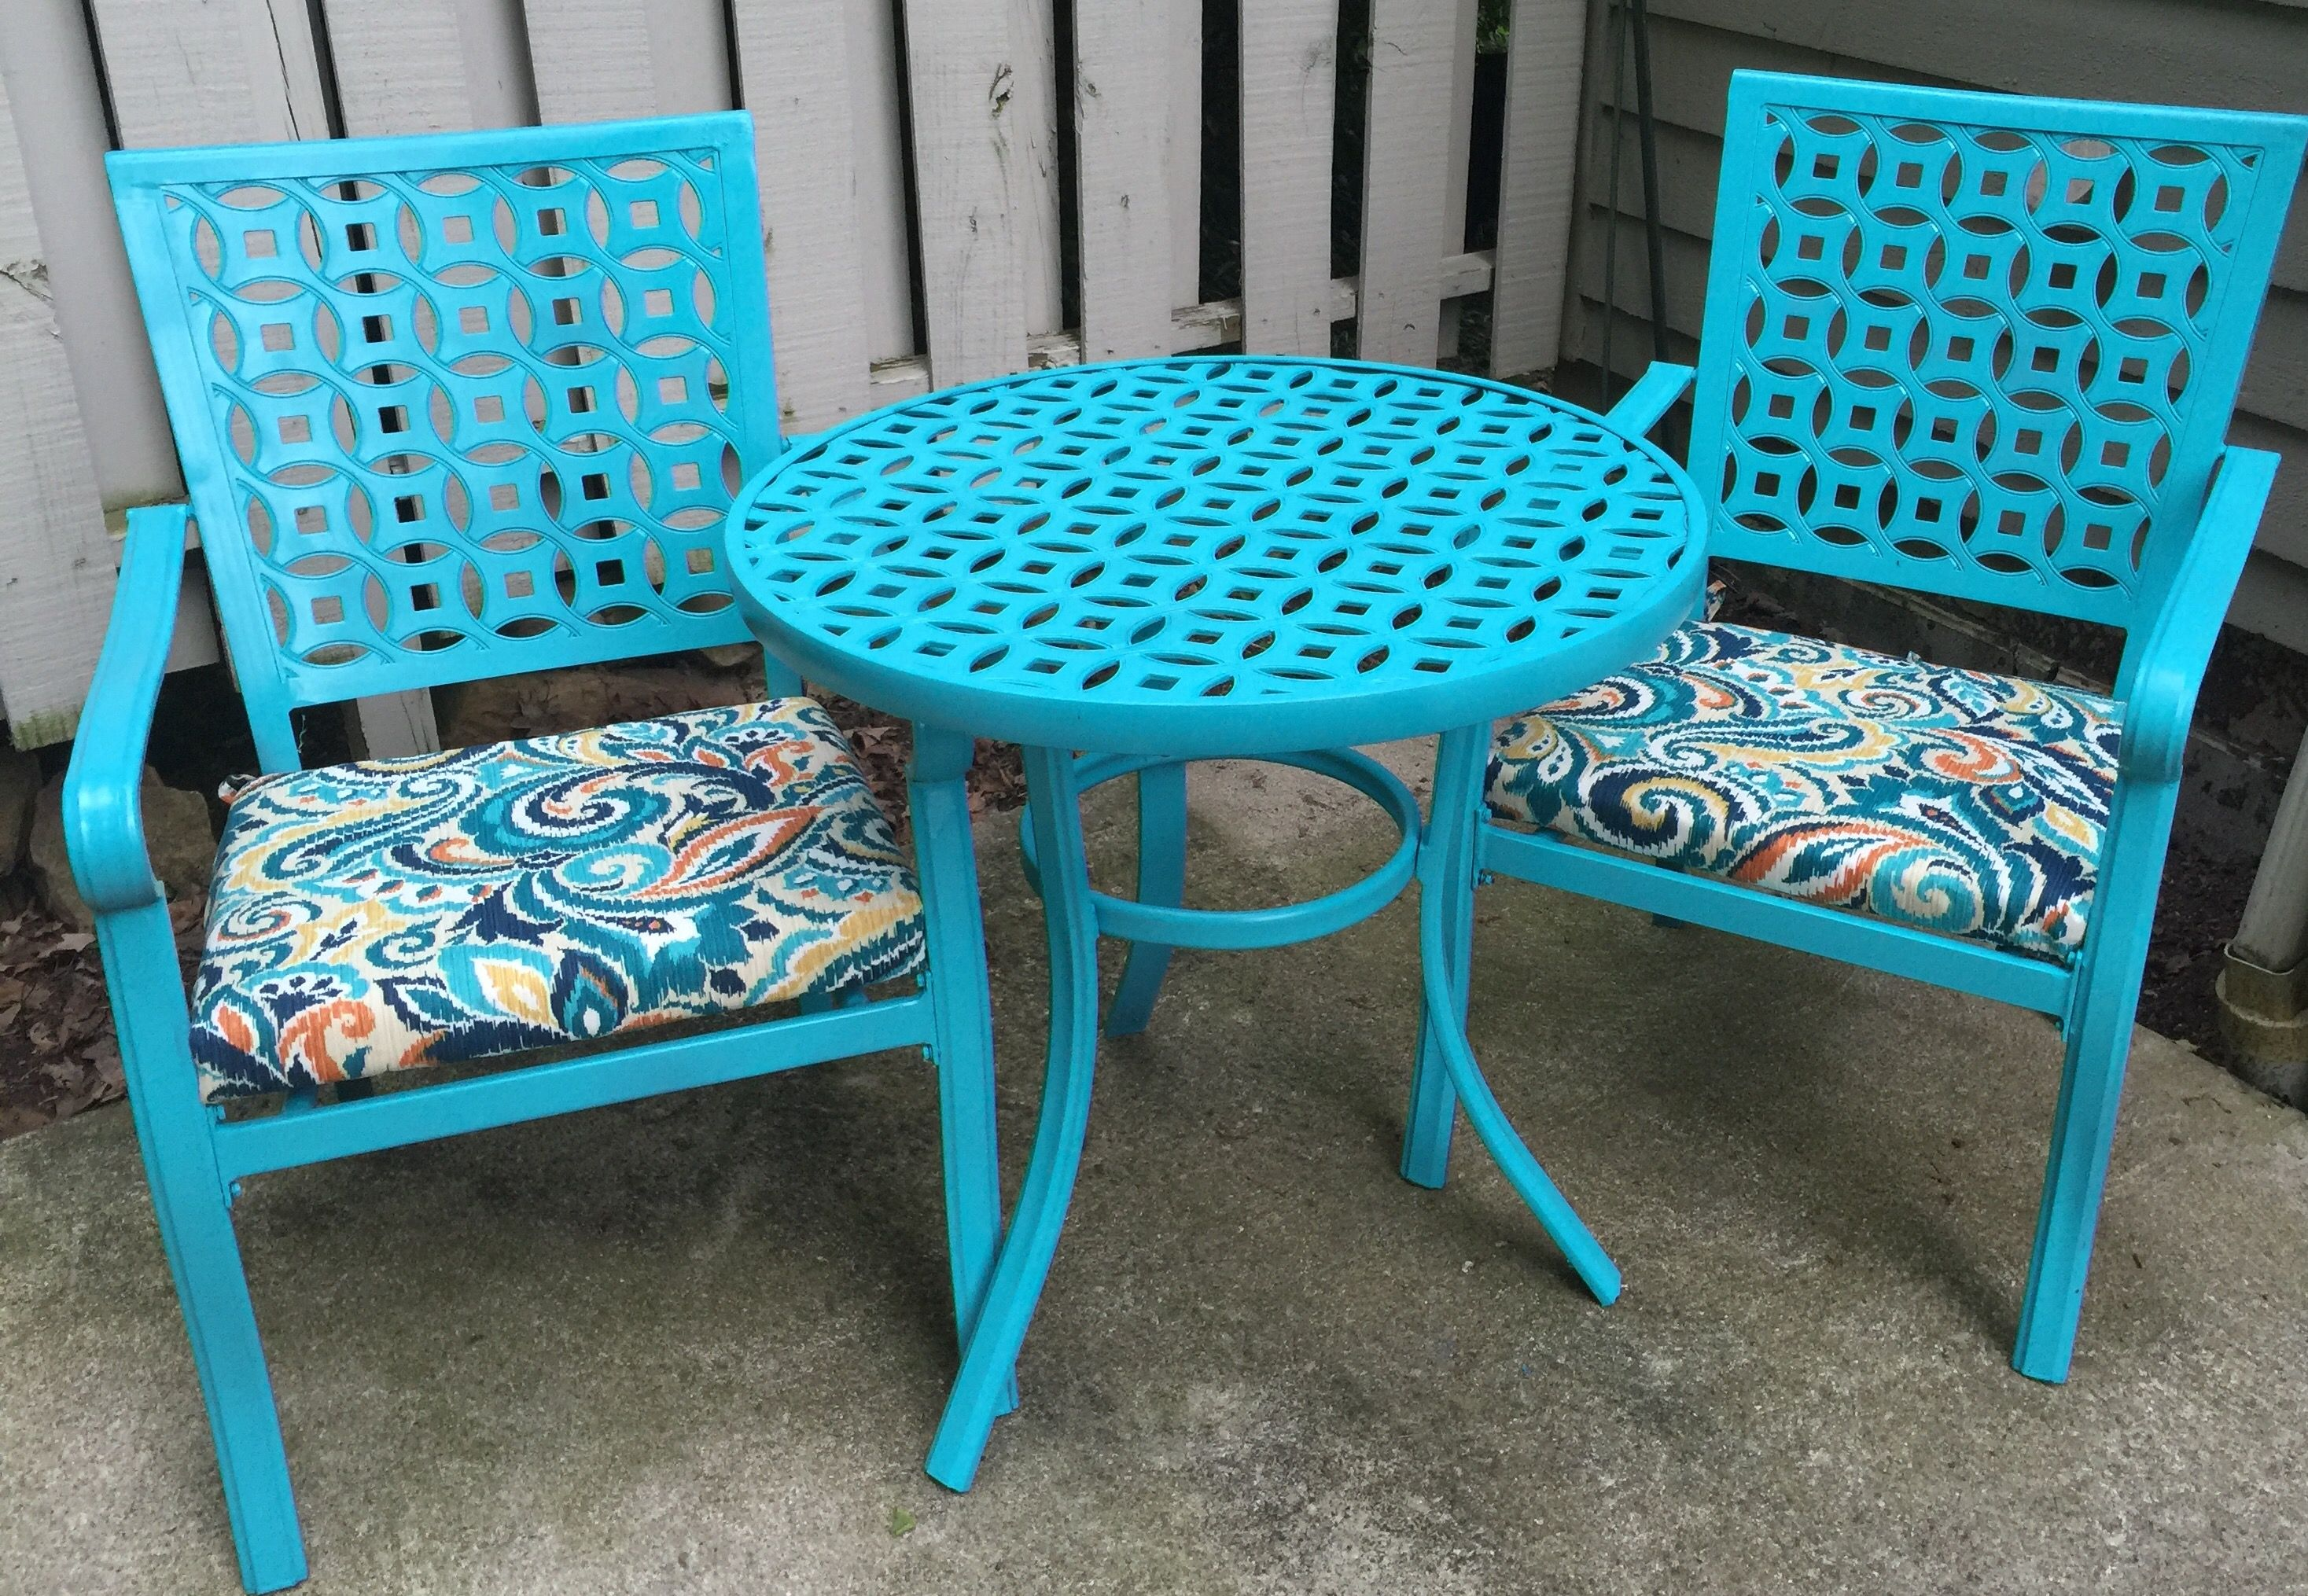 Pin by Simmons on Spray Painted   Redo furniture, Dining ...